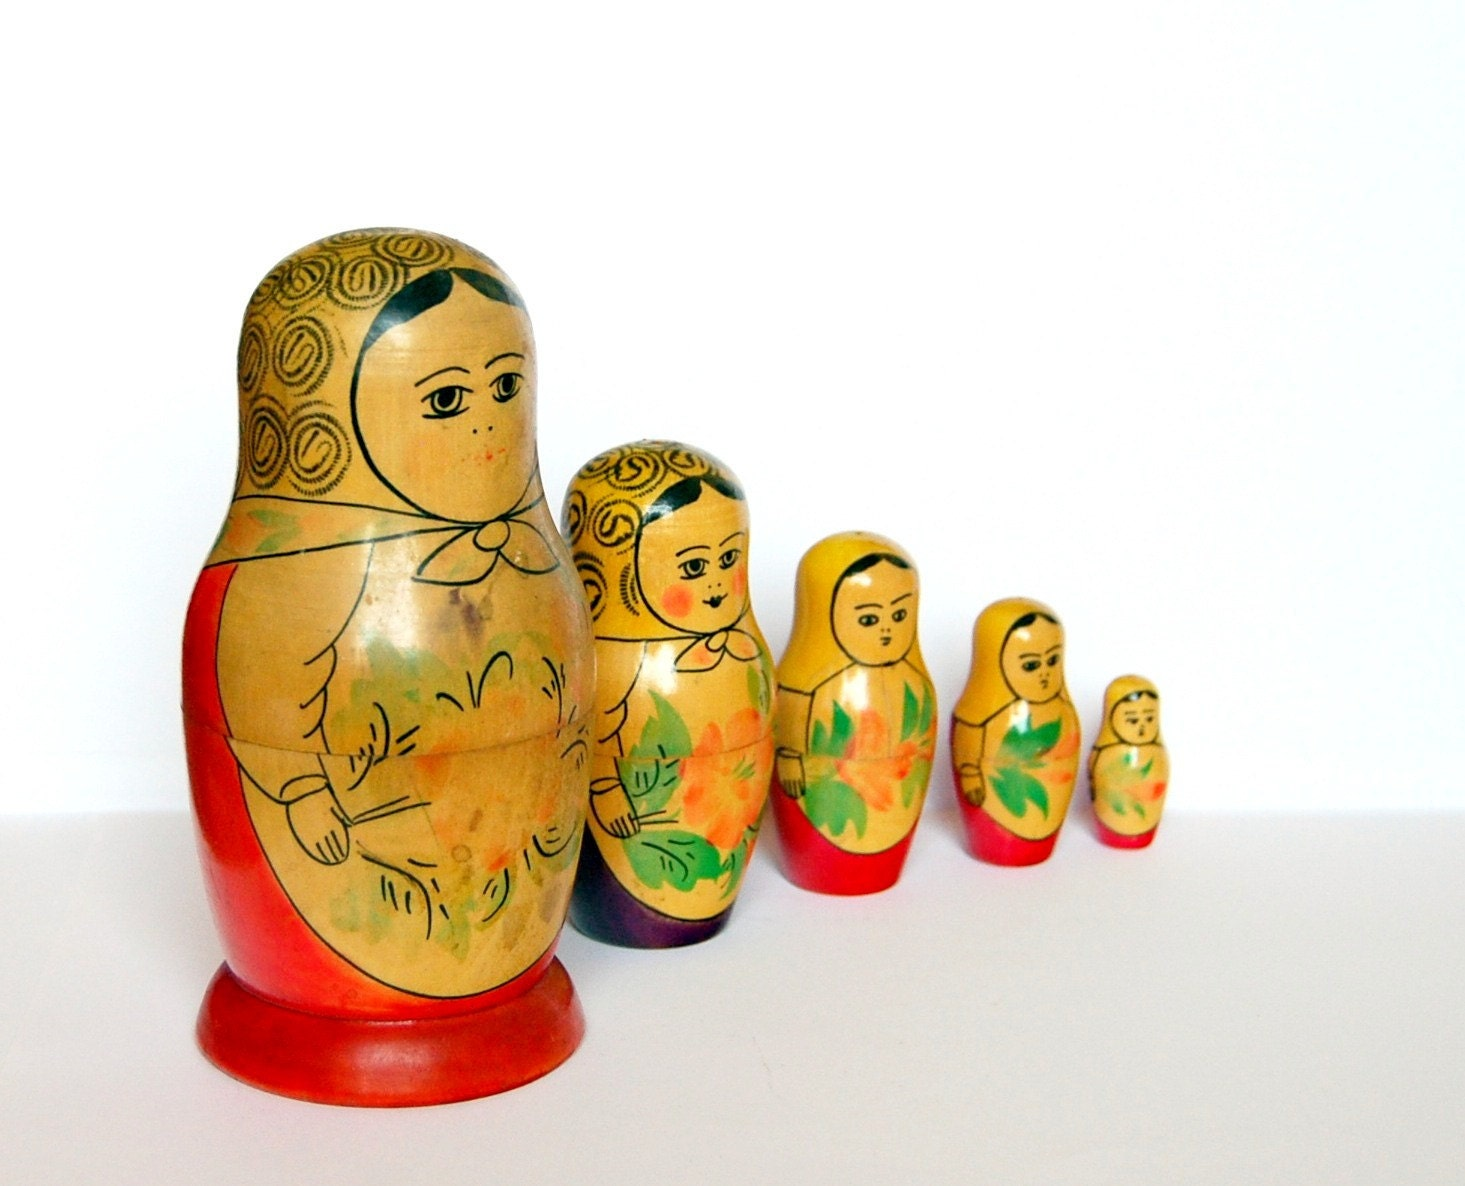 Vintage nesting dolls matryoshka from Soviet Union